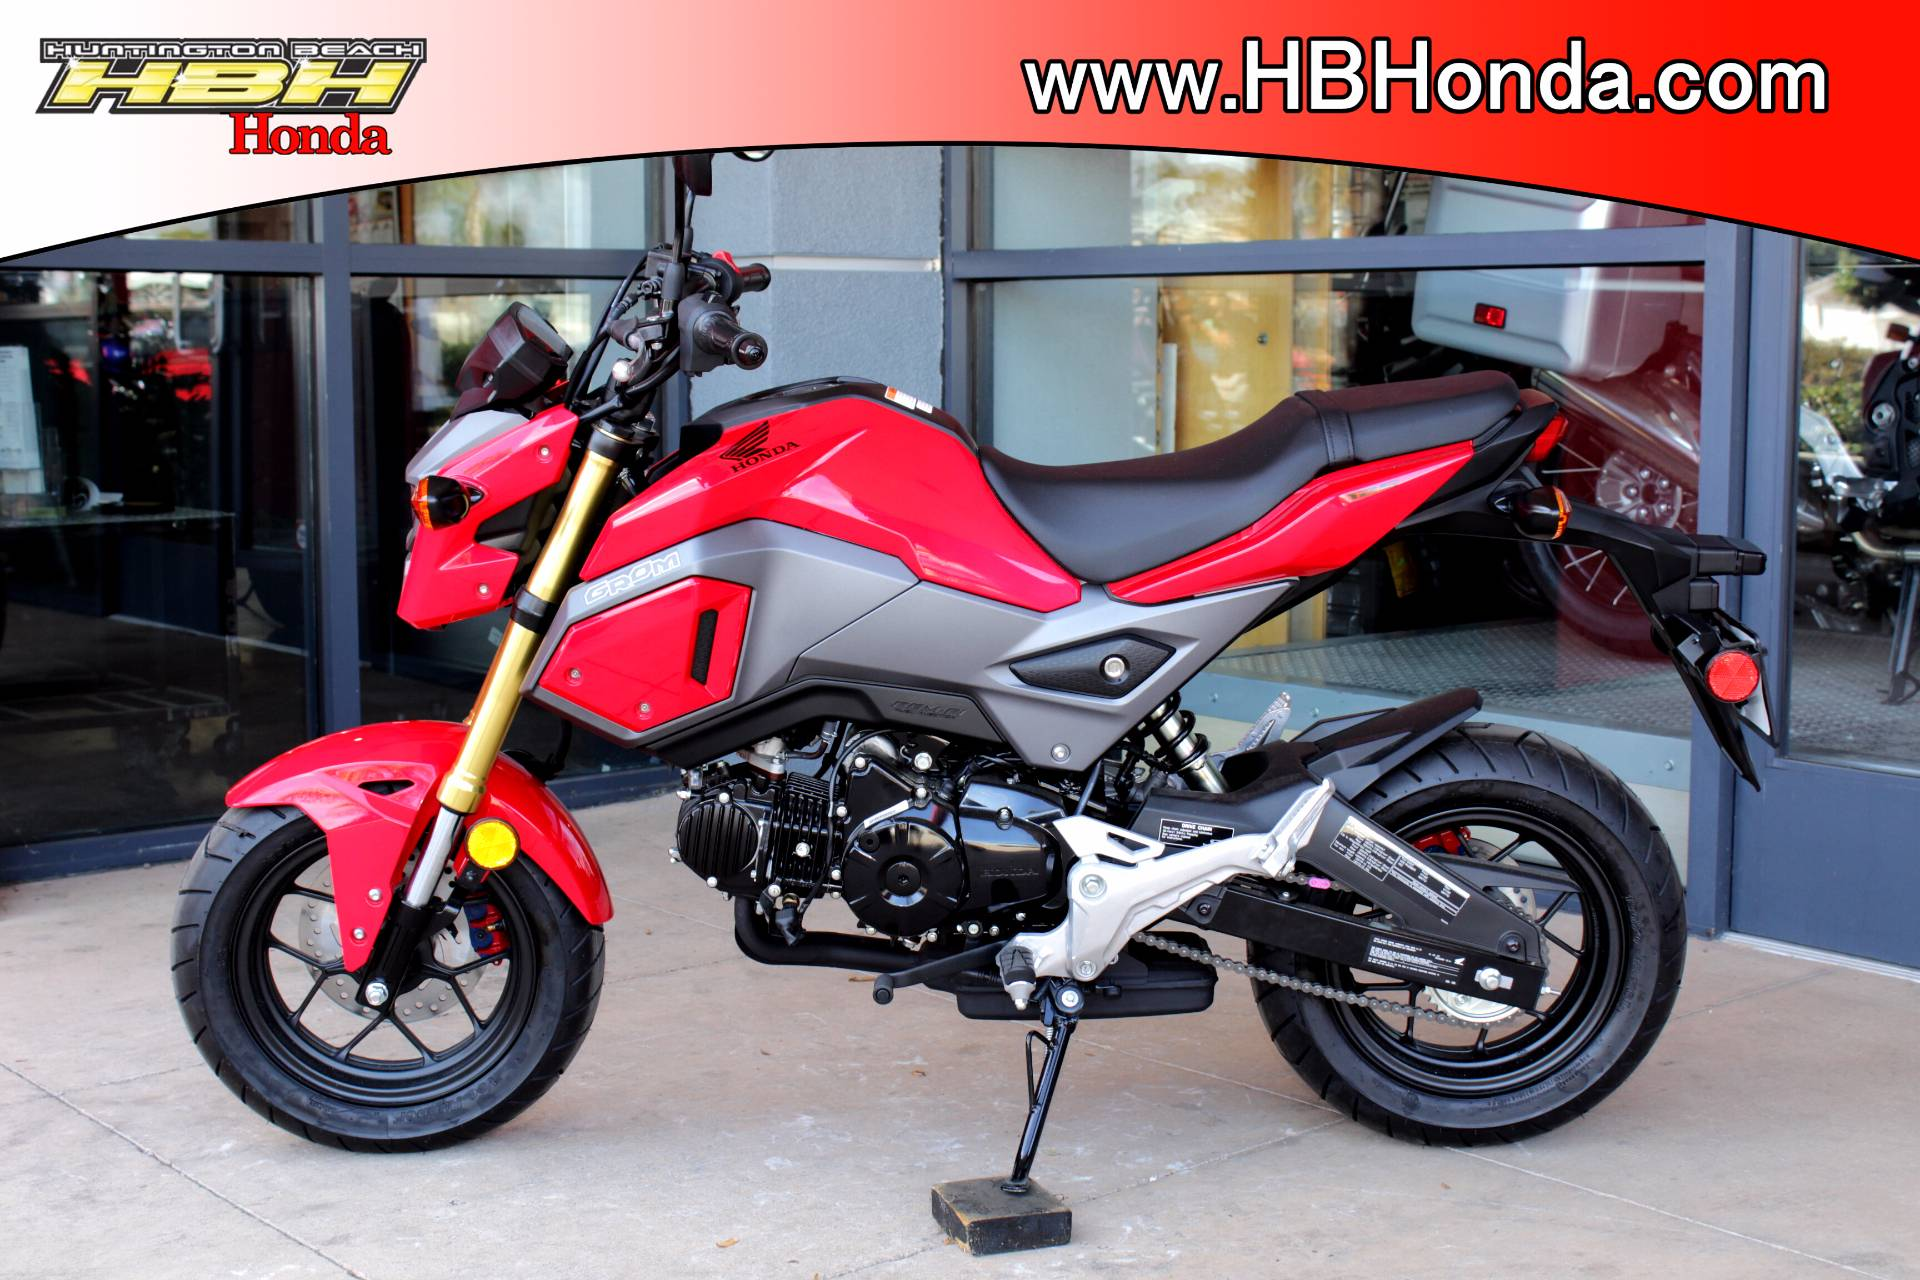 New 2018 Honda Grom Motorcycles for sale in Huntington Beach CA